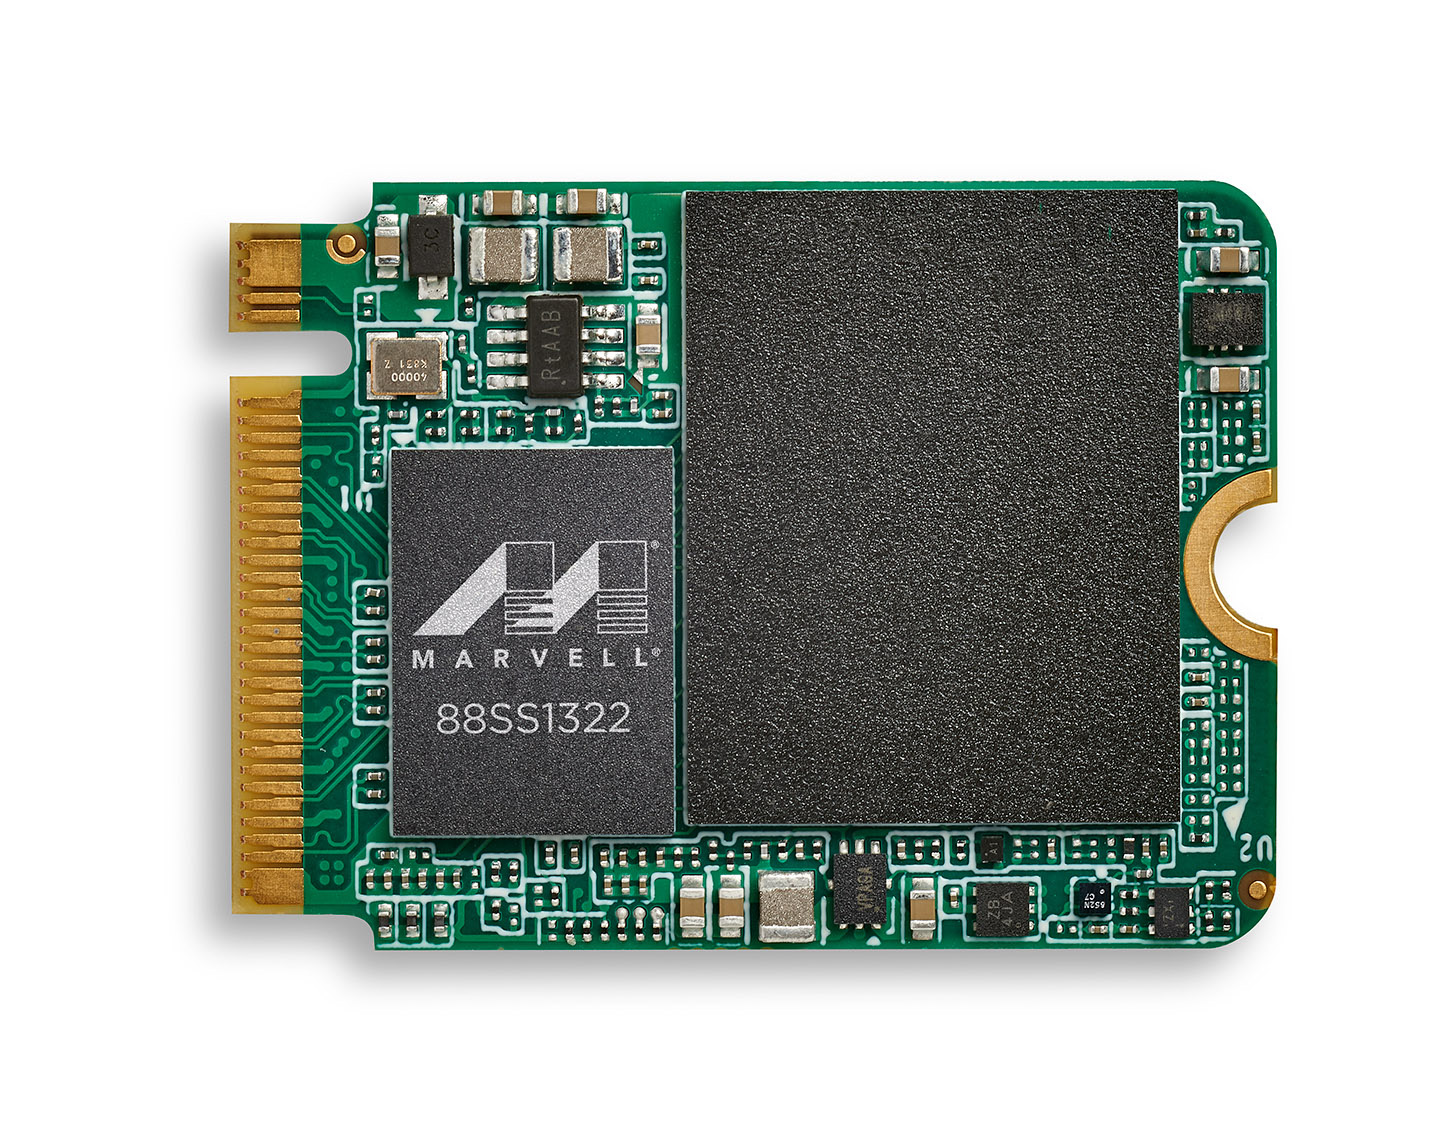 m.2230 DRAM-less SSD Reference Design with Marvell® 88SS1322 PCIe® Gen4 NVMe™ SSD Controller